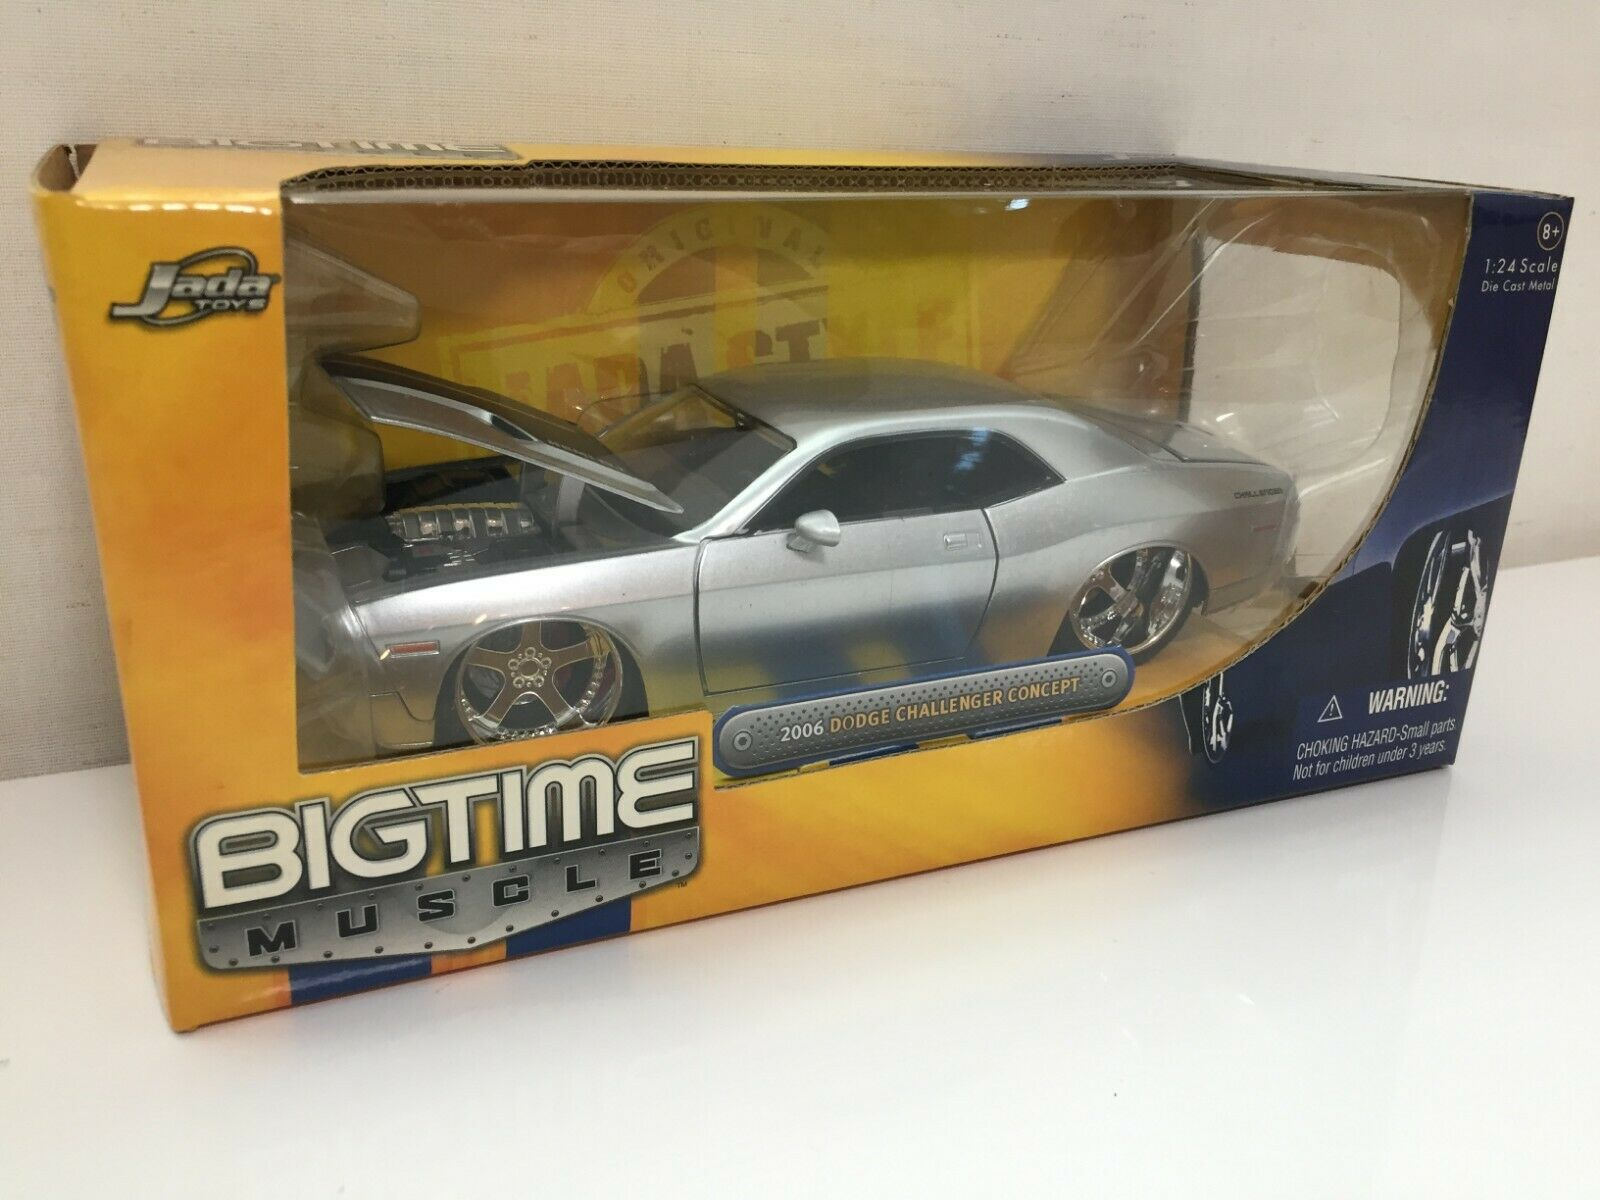 Very RARE NEW Jada Toys BIGTIME 2006 DODGE CHALLENGER CONSEPT Japan F S 1 24